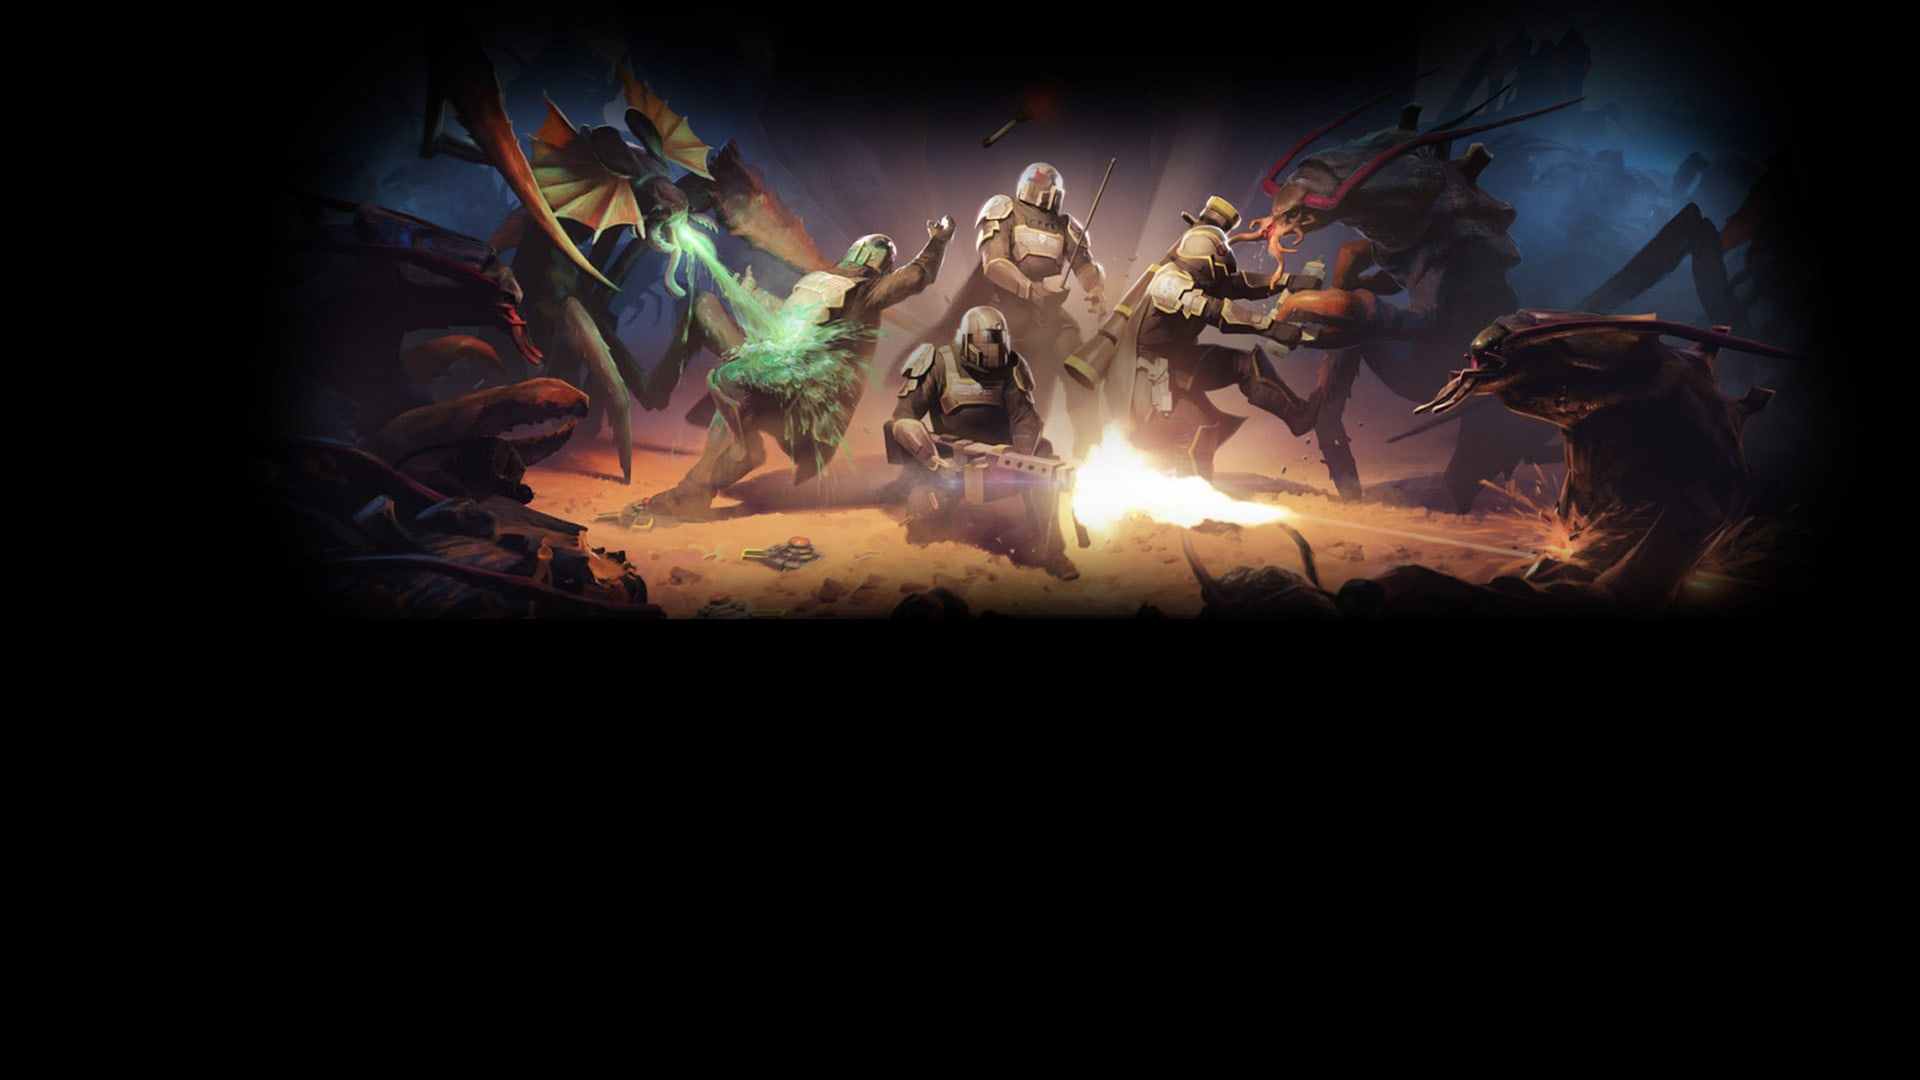 Helldivers HD Wallpapers   7wallpapers.net